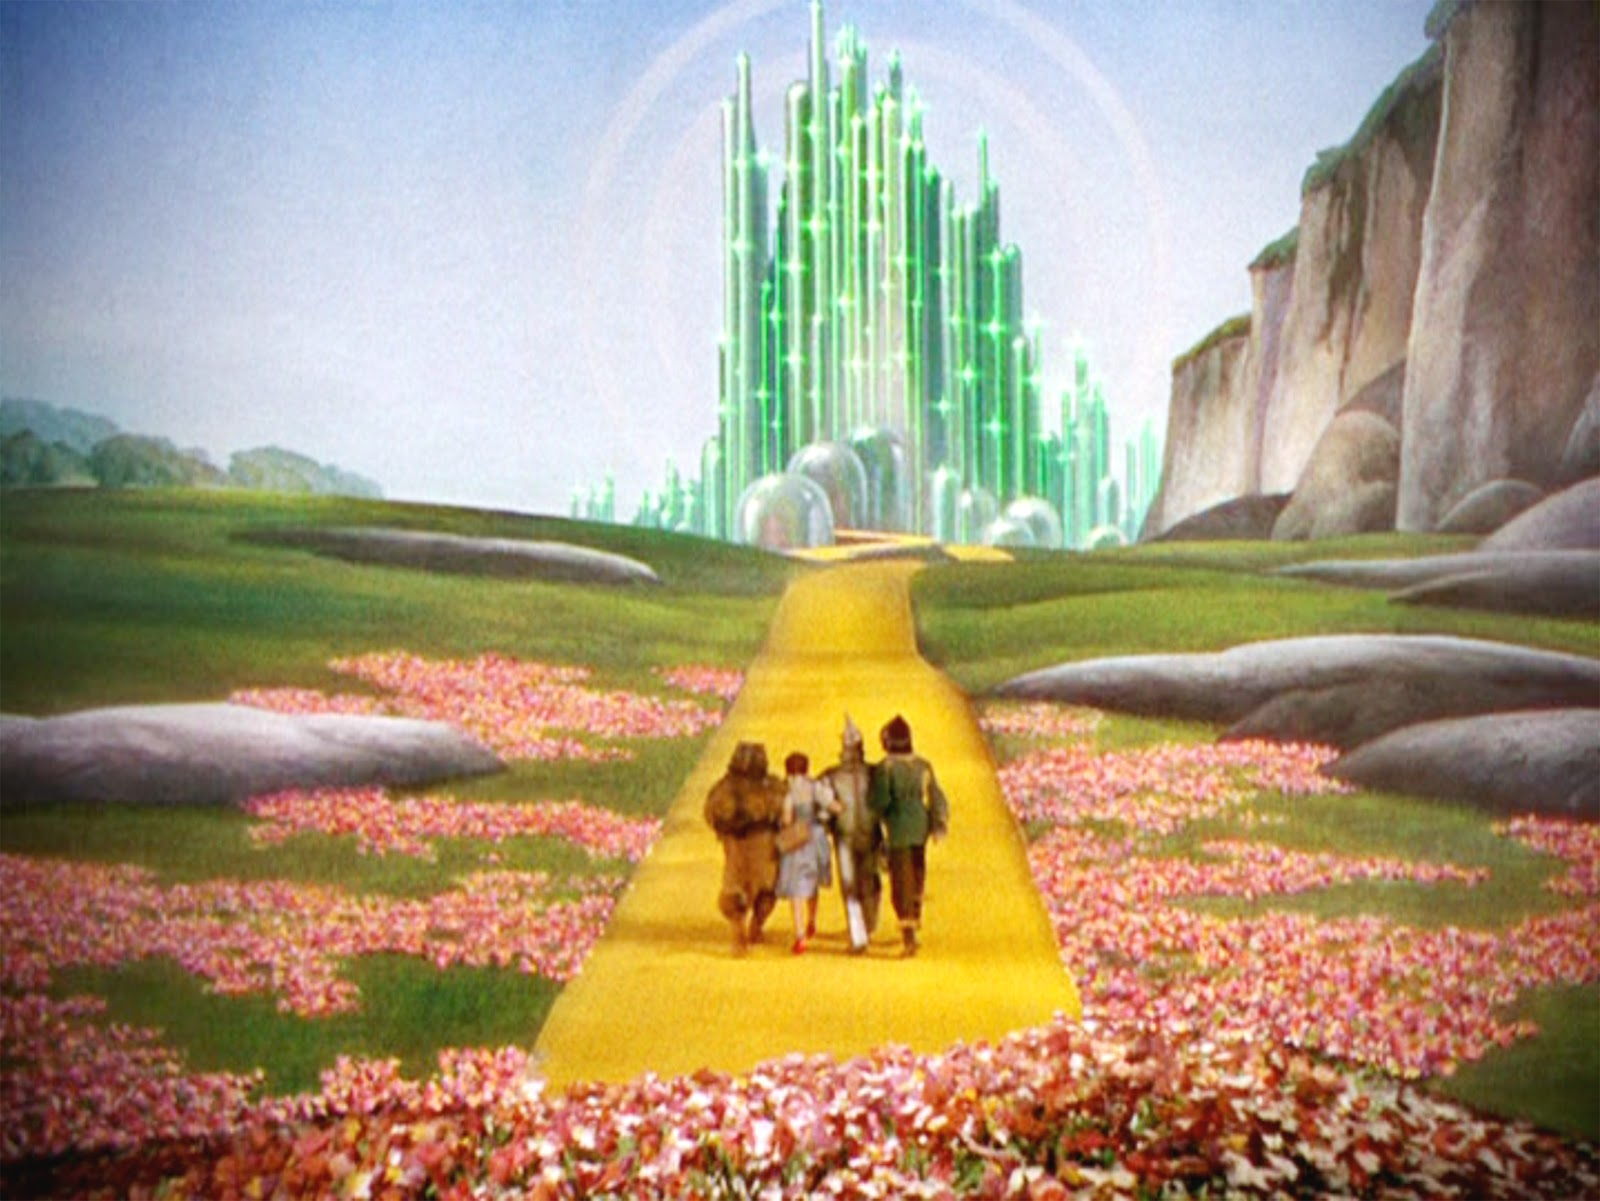 emerald city Allison keene reviews nbc's new drama emerald city, which turns the wizard of oz into a drama series directed by tarsem singh, starring adria arjona.